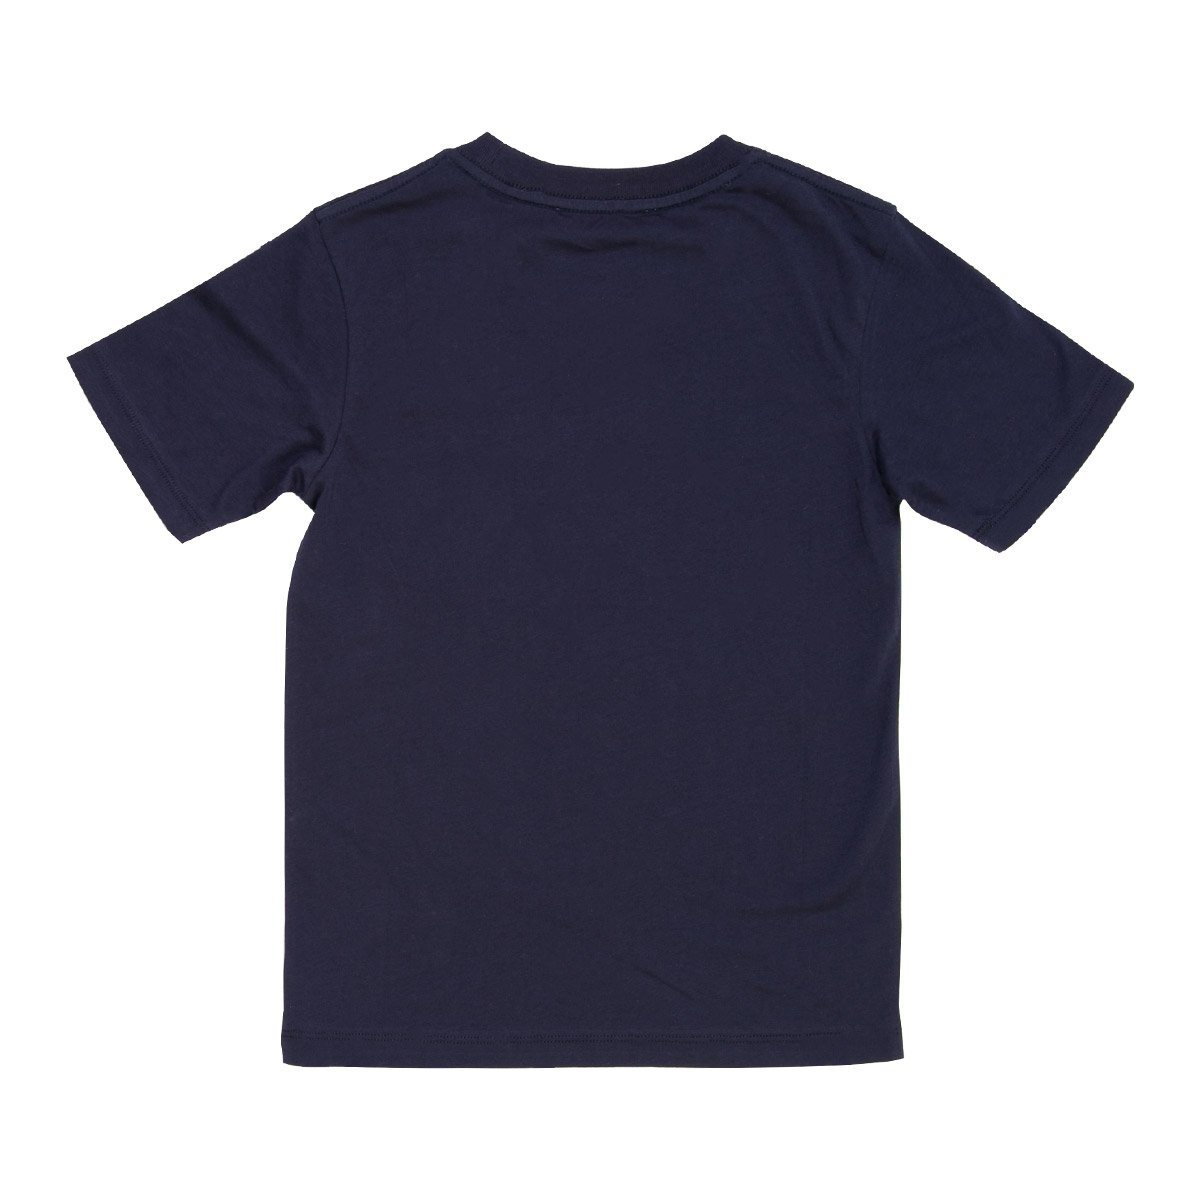 Angels Luxury Kidswear Round Neck Graphic T-Shirt - New York, Navy Blue